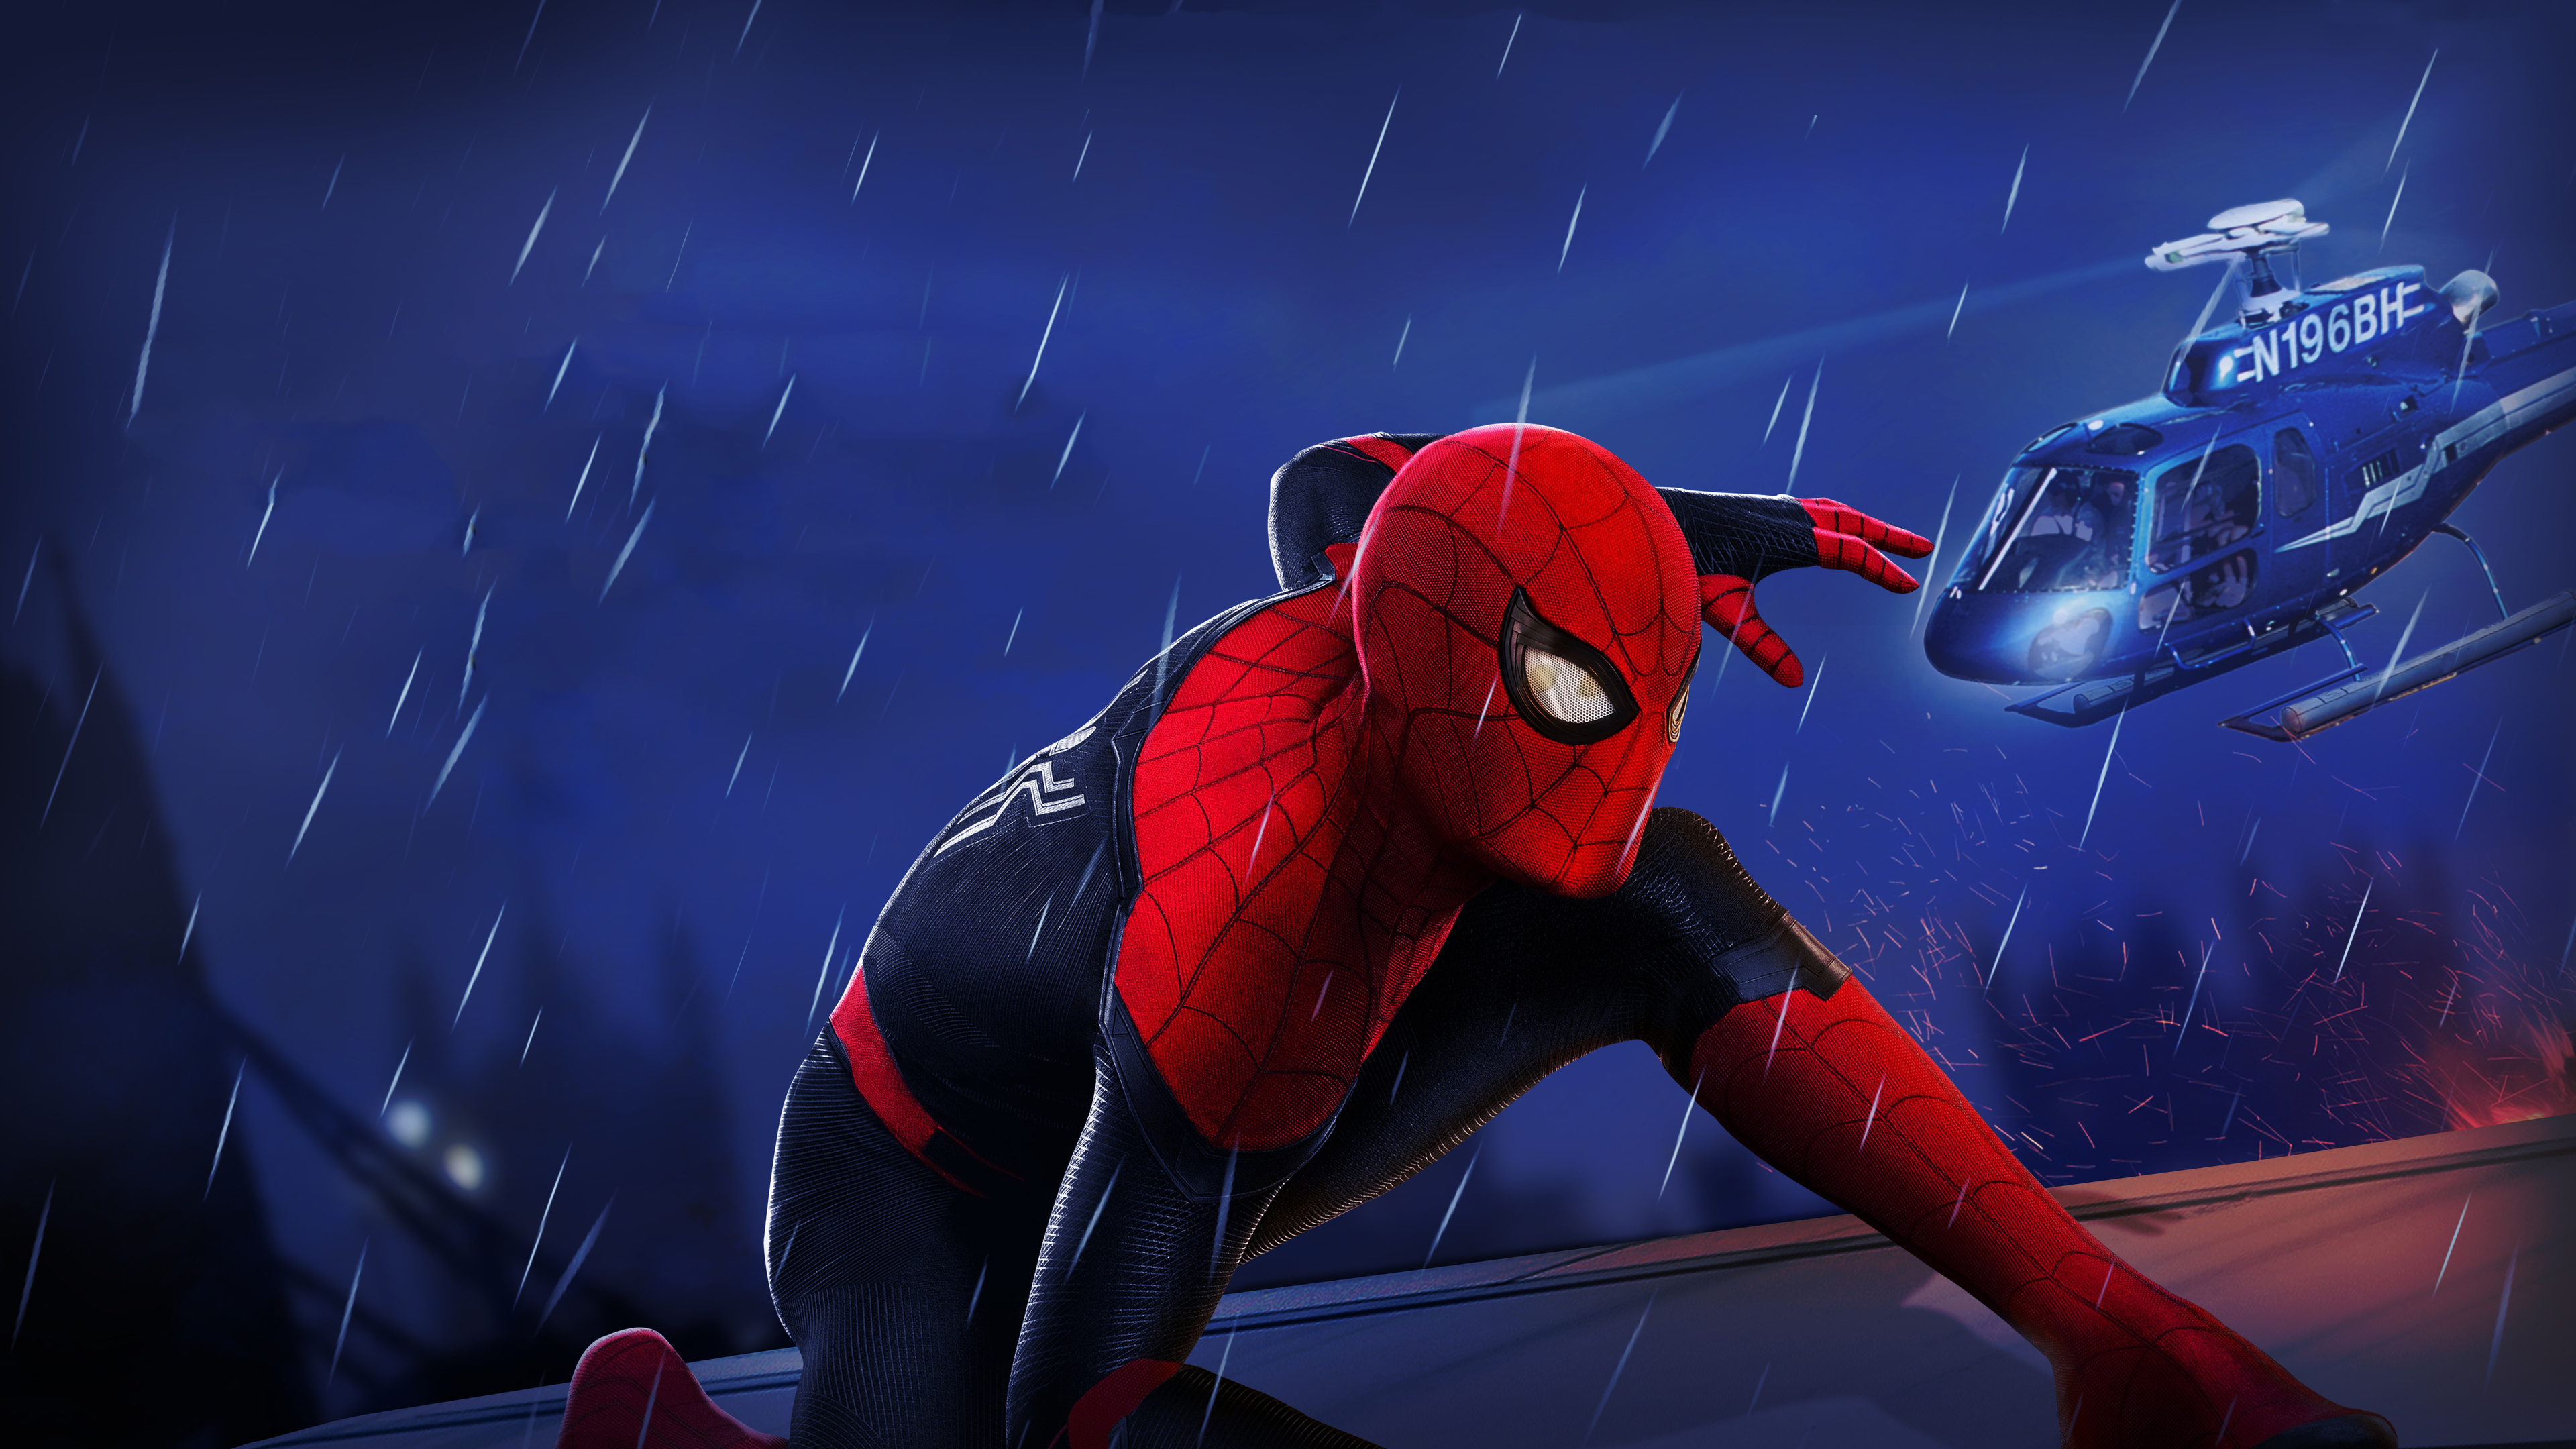 Wallpapers 4k Spiderman Far From Home Movie 4k 2019 movies wallpapers